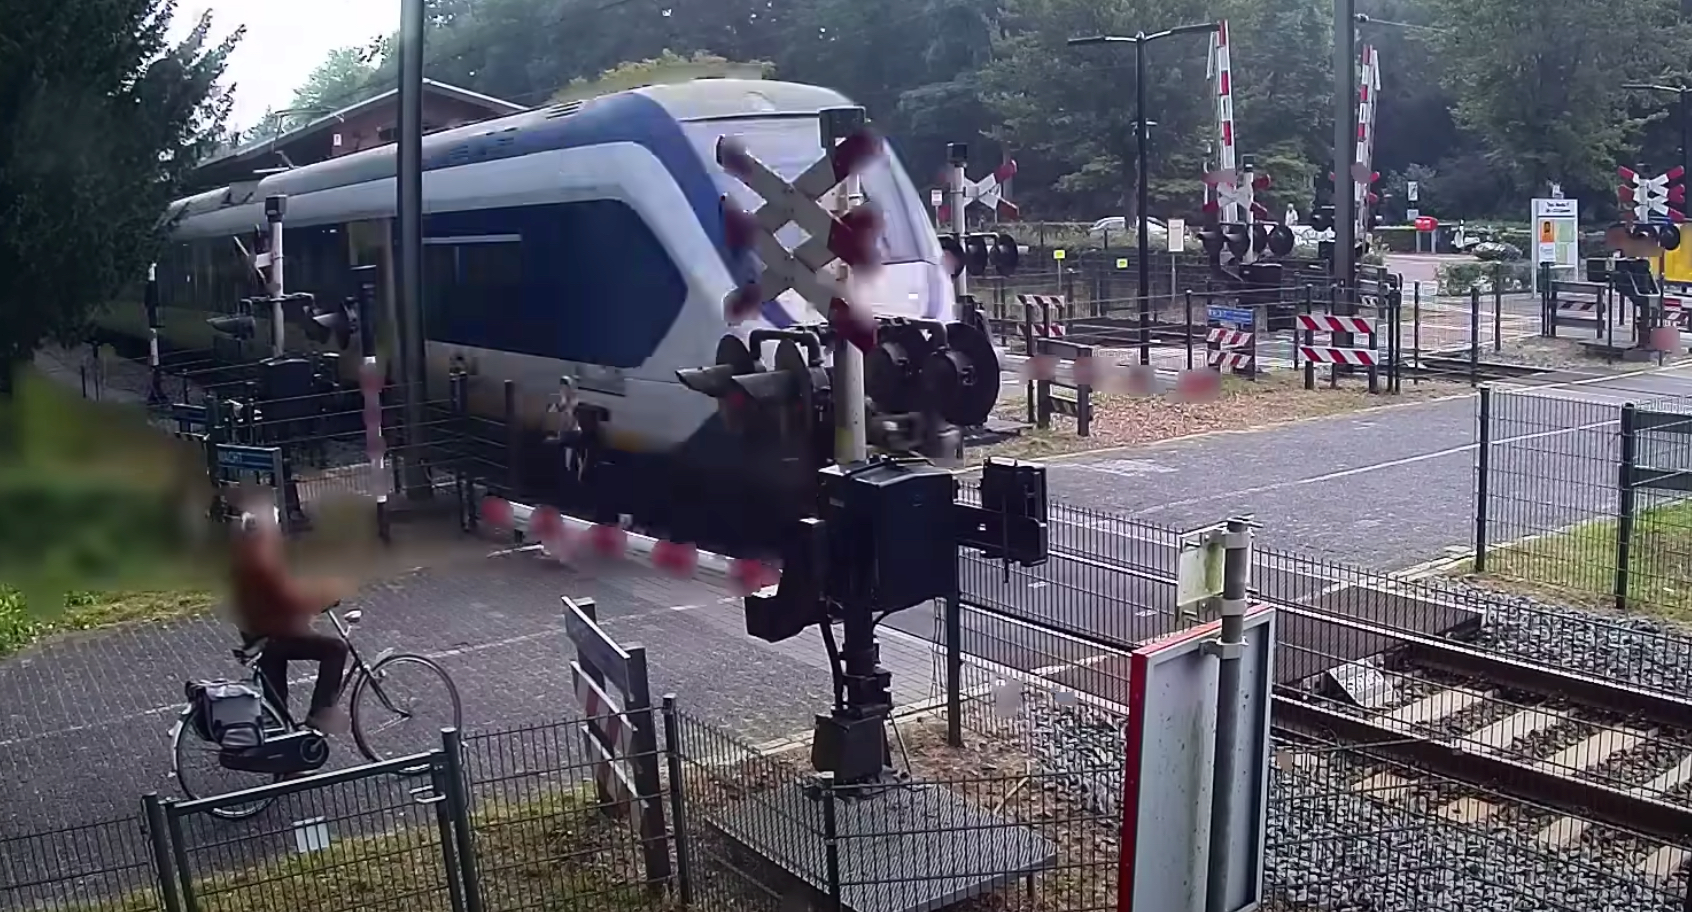 Watch this woman barelyjust barelymiss getting hit by a train